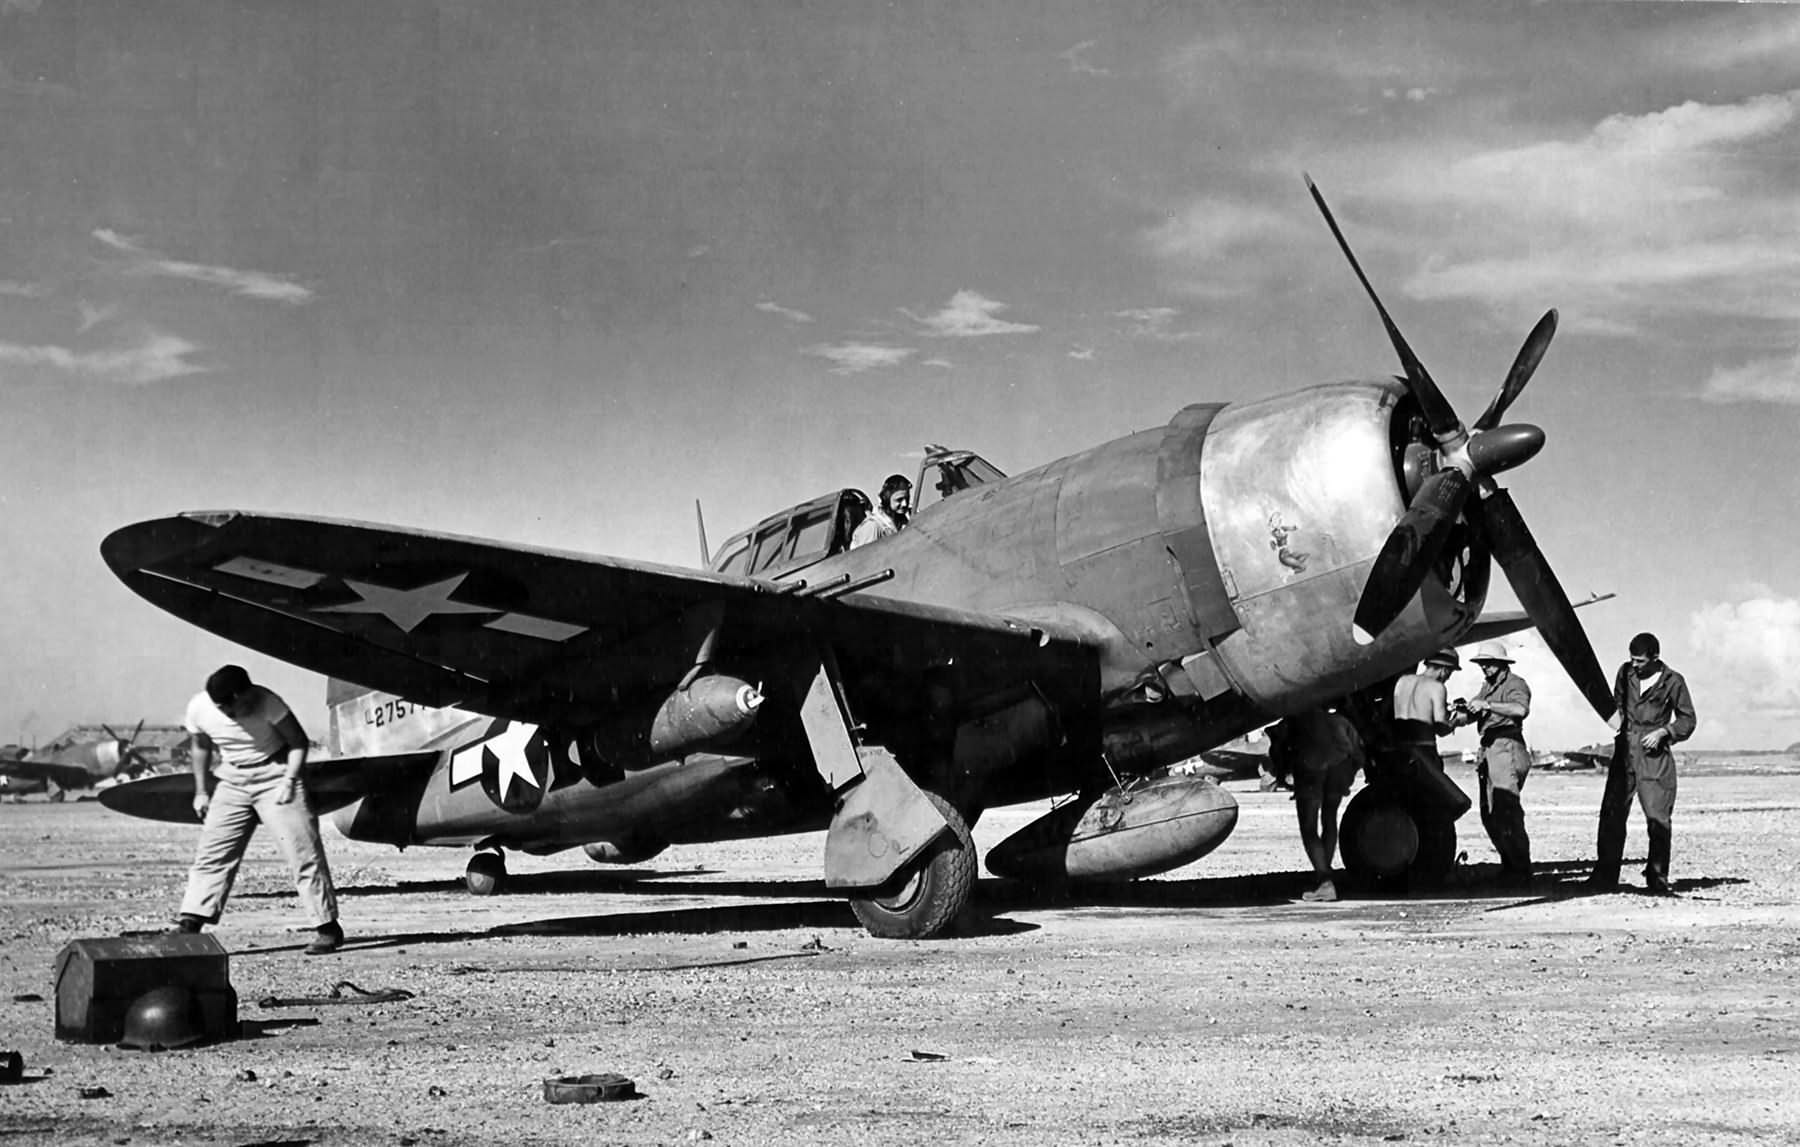 P-47D_42-75778_of_the_19th_FS_318th_FG.jpg